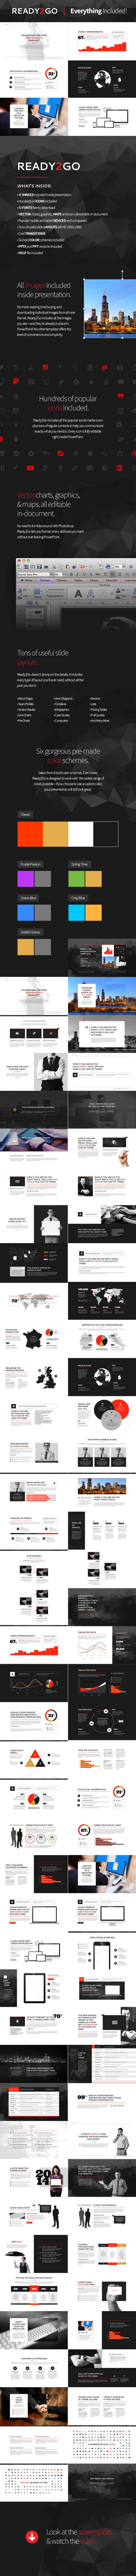 GraphicRiver Ready2Go Professional PowerPoint Template 9115091